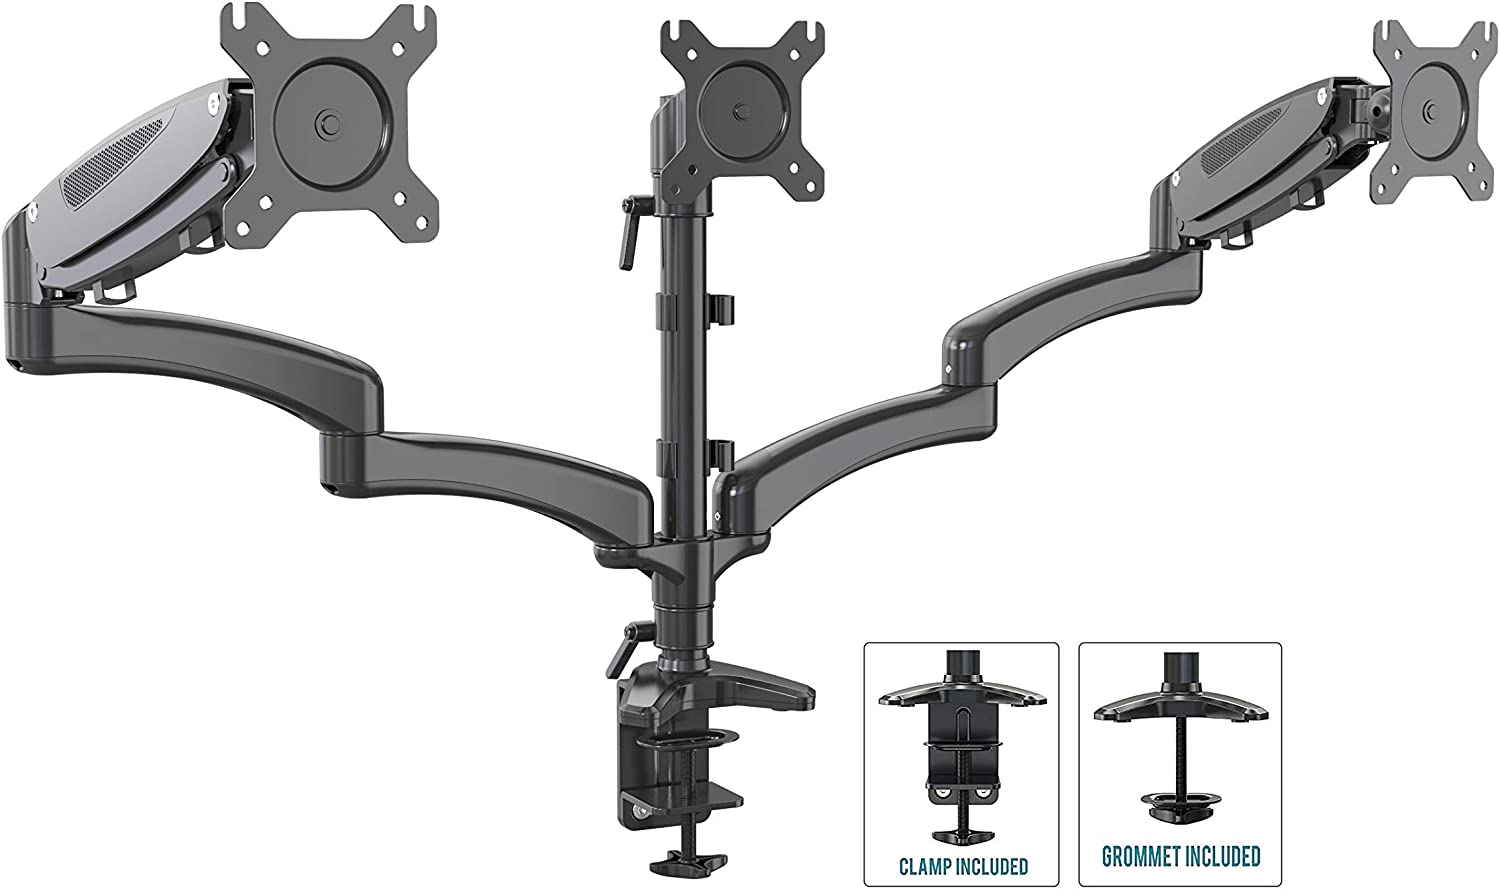 """SHOPPINGALL Fully Adjustable Dual Gas Spring LCD Monitor Desk Mount Stand with 3 Swing Arms for Three 15""""-32"""" Monitors, Desk Clamp and Grommet Mounting Options in The Box - SA-GM135D (Black)"""